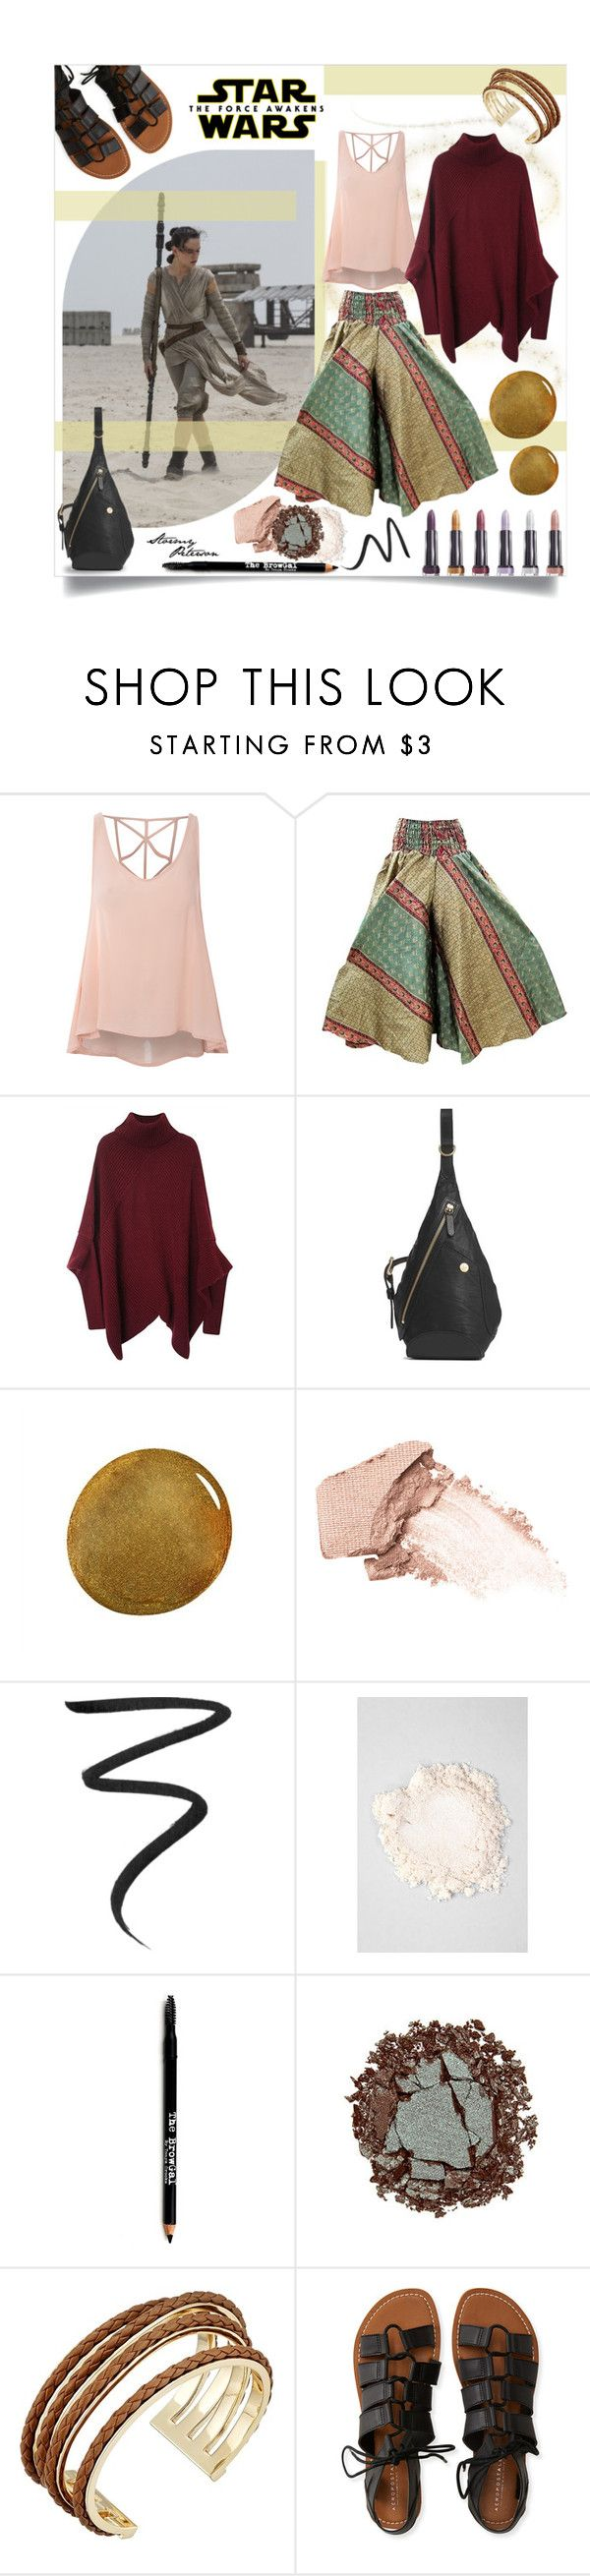 """Not Your Bae"" by stormypeterson ❤ liked on Polyvore featuring Glamorous, Mismo, NARS Cosmetics, Urban Decay, Eyeko, e.l.f., Lord & Taylor, Cole Haan and Aéropostale"